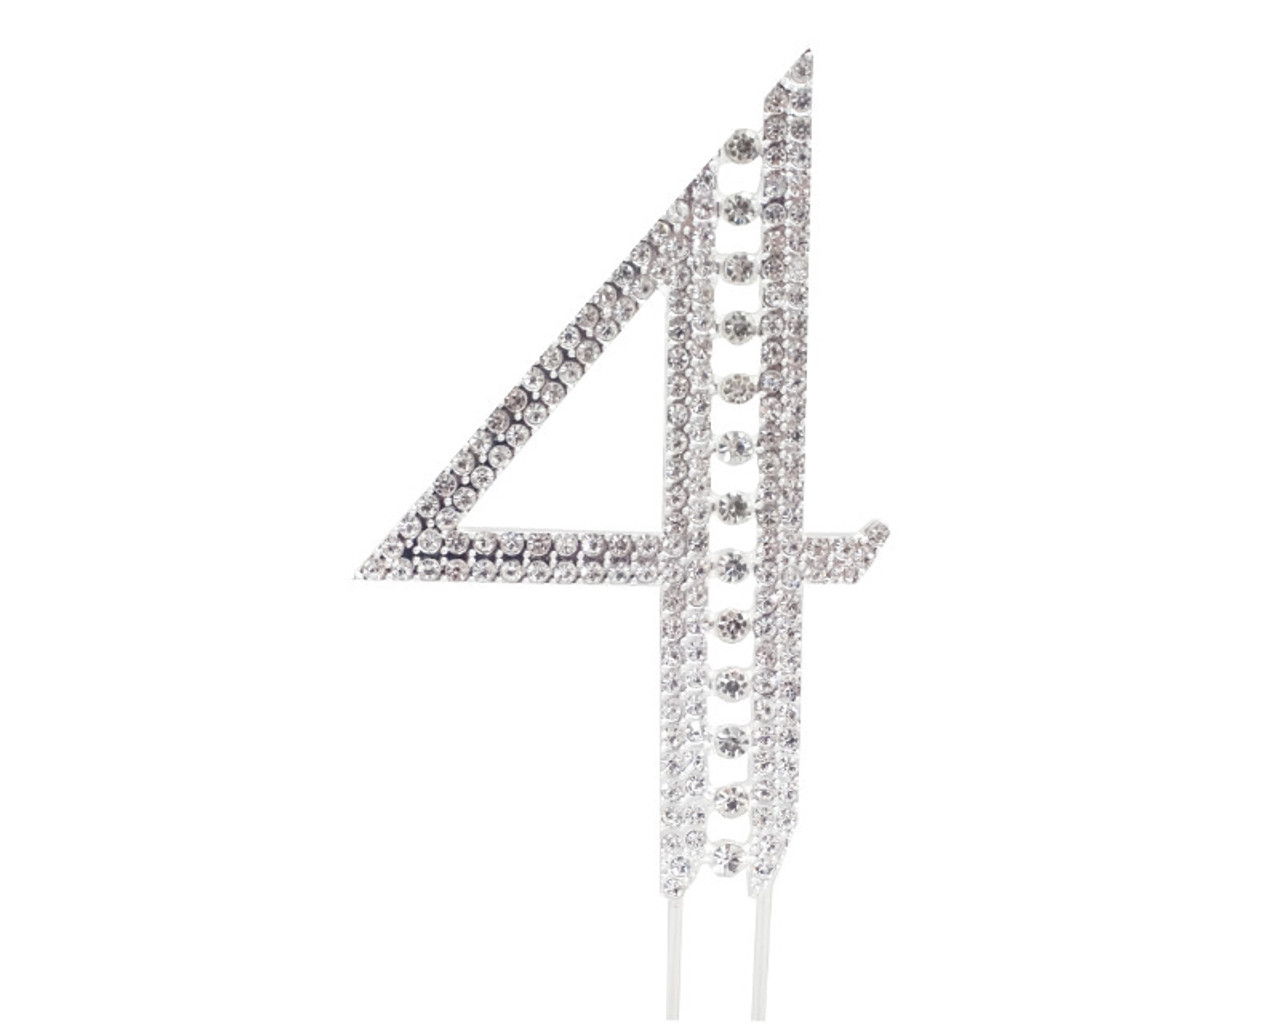 089c6d44 Silver Rhinestone Studded Cake Topper Number 4 - Pack of 3 - CB Flowers &  Crafts